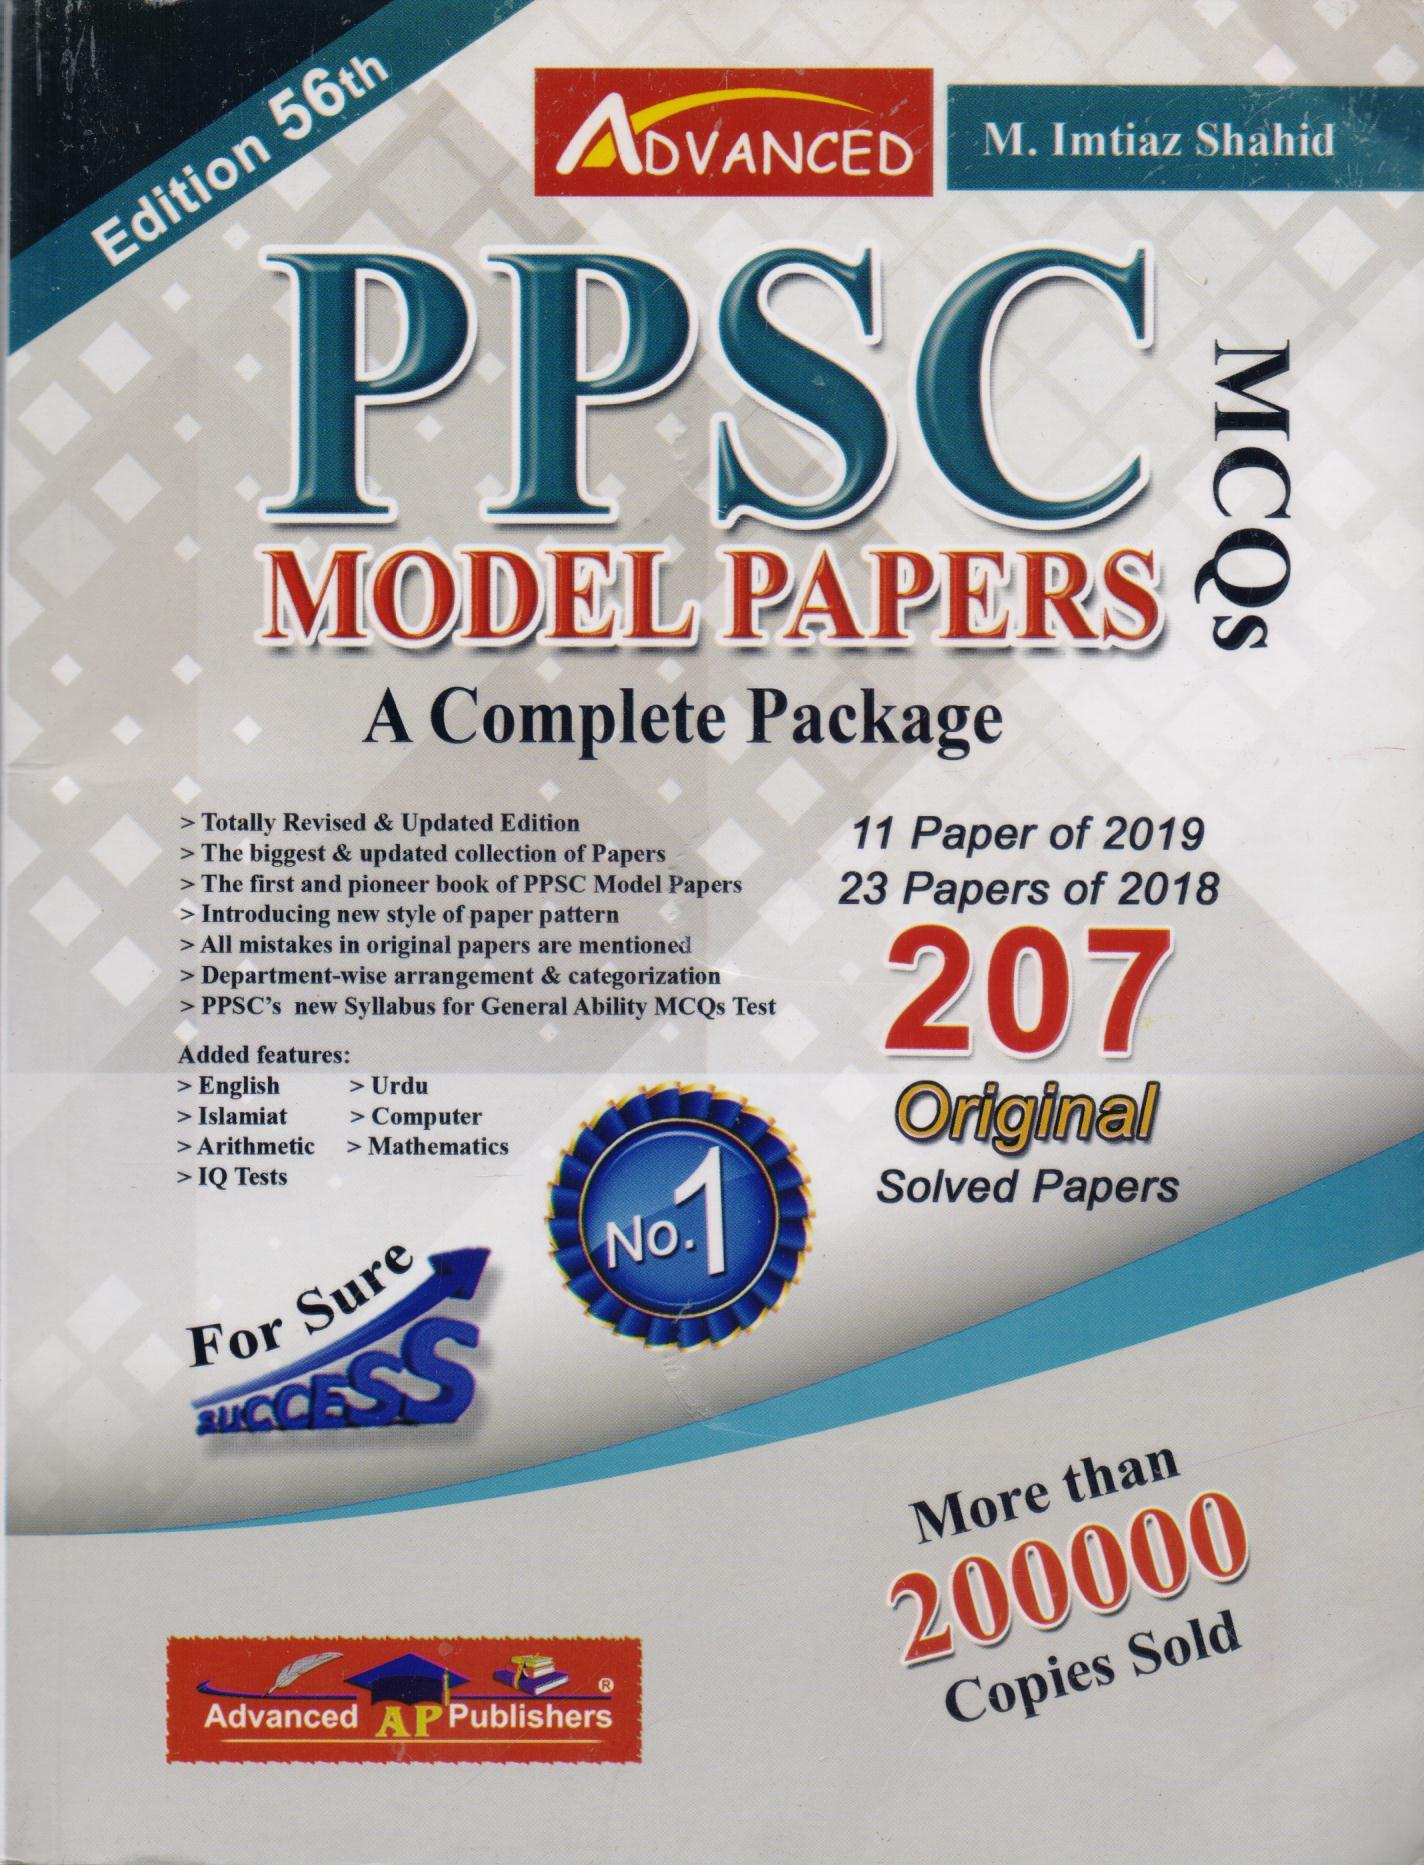 Advanced PPSC Model Papers MCQs A complete Package by M  Imtiyaz Shahid